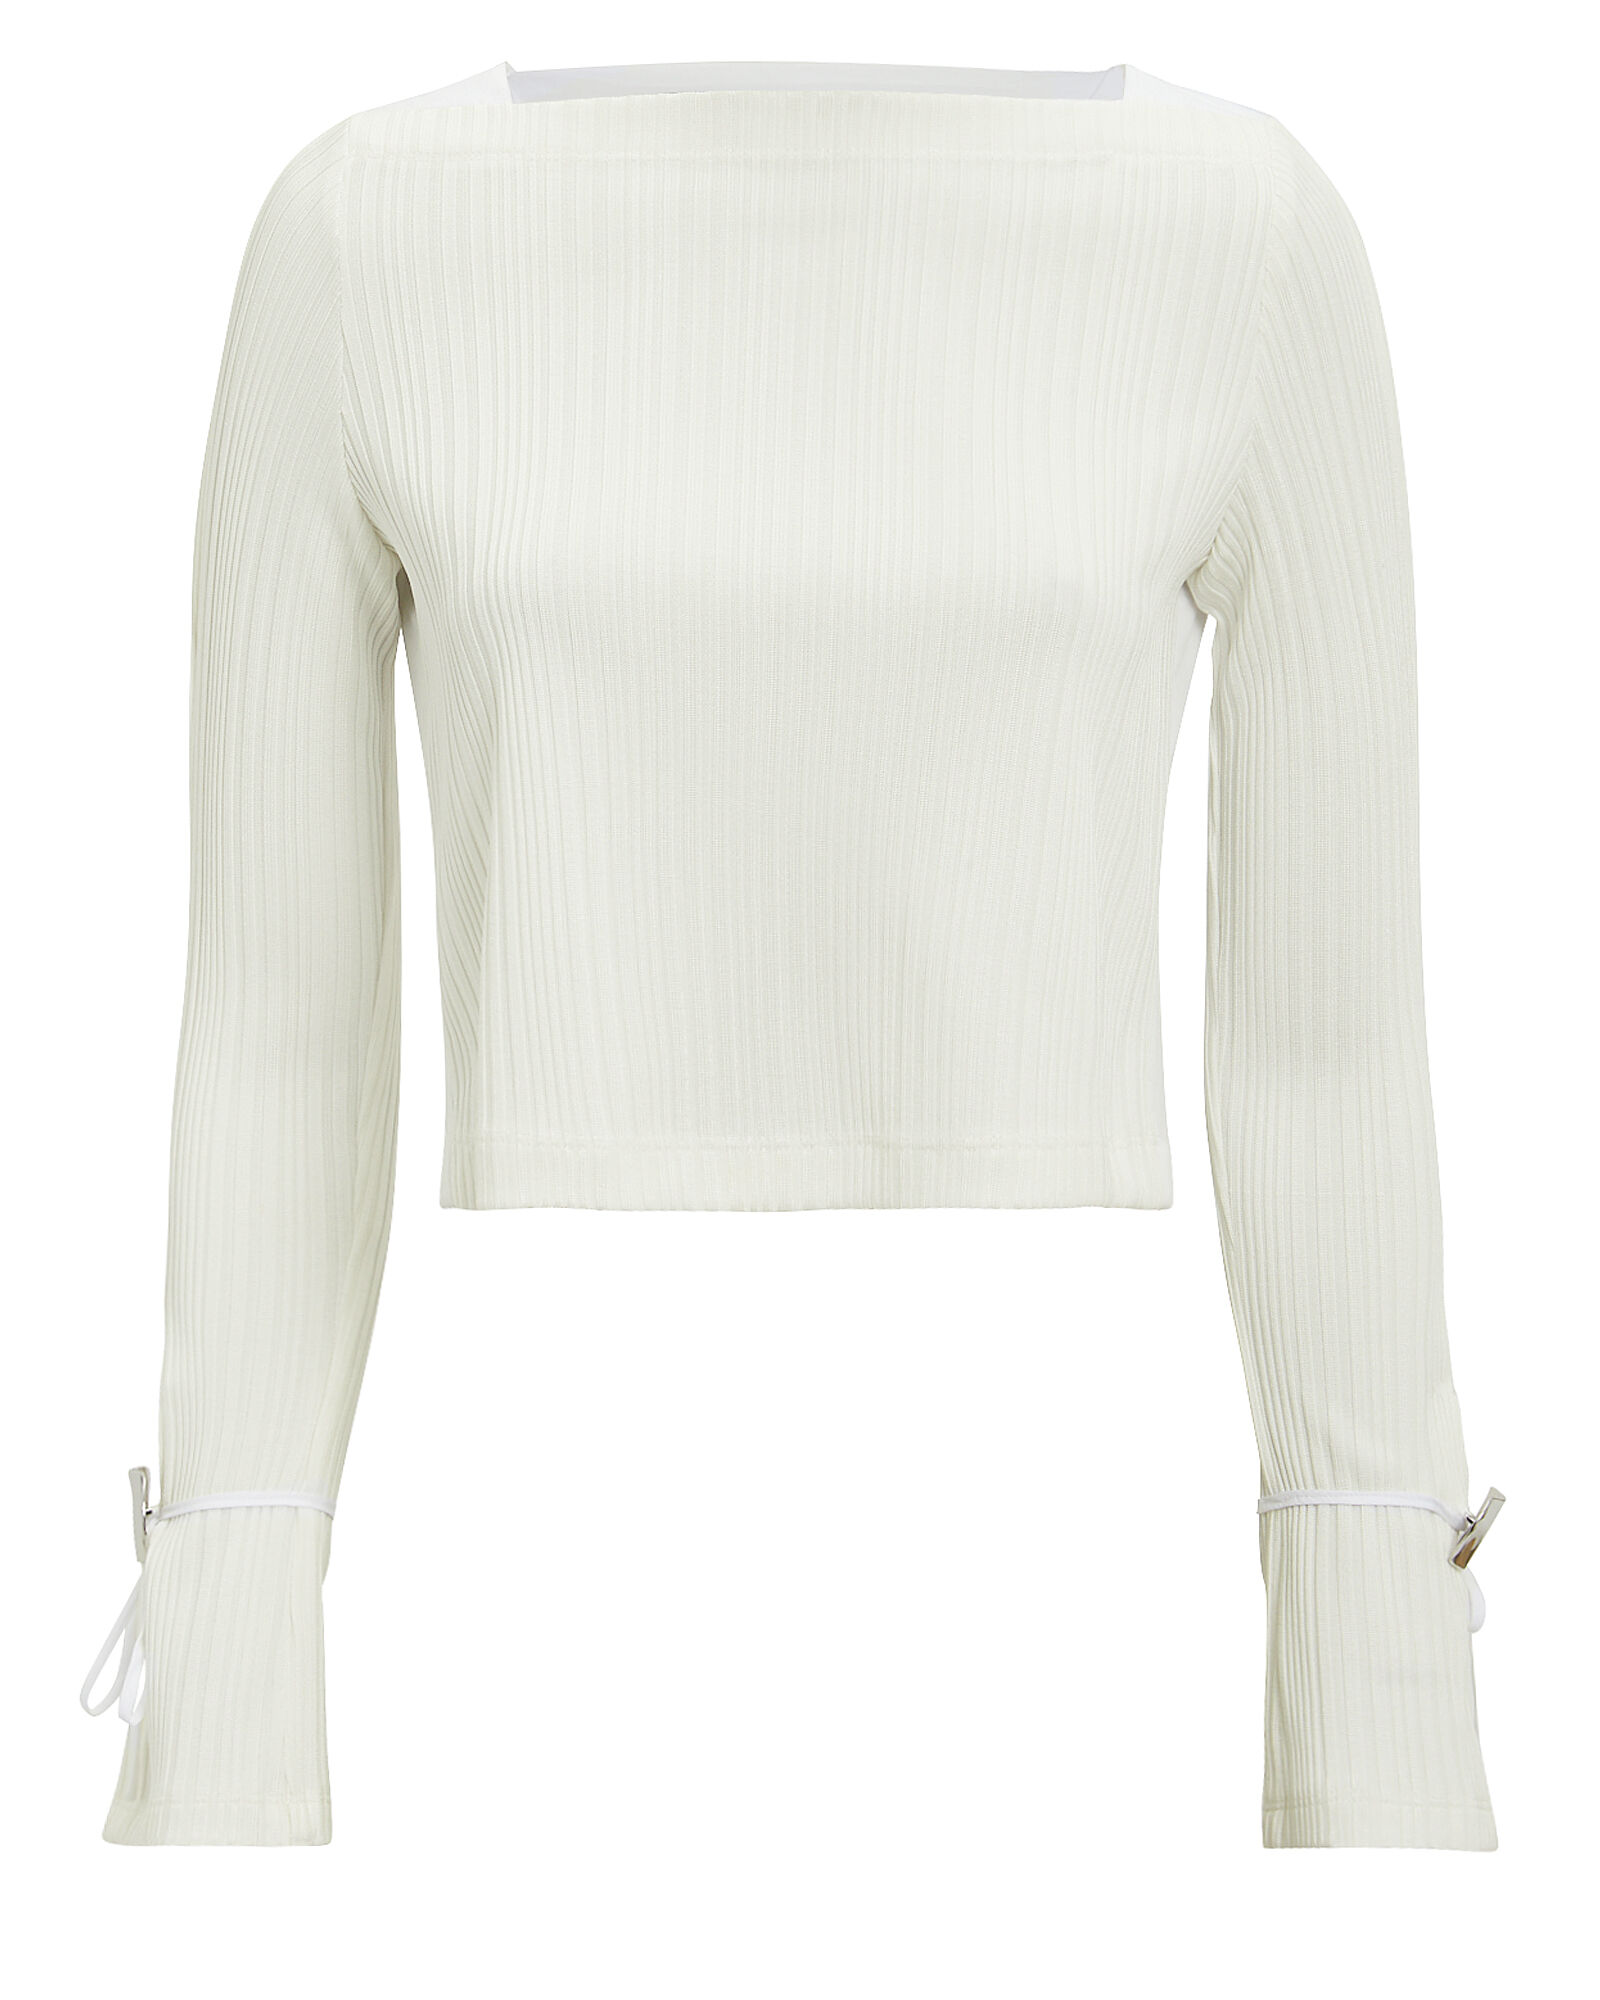 Crepe Top With Button Details, WHITE, hi-res